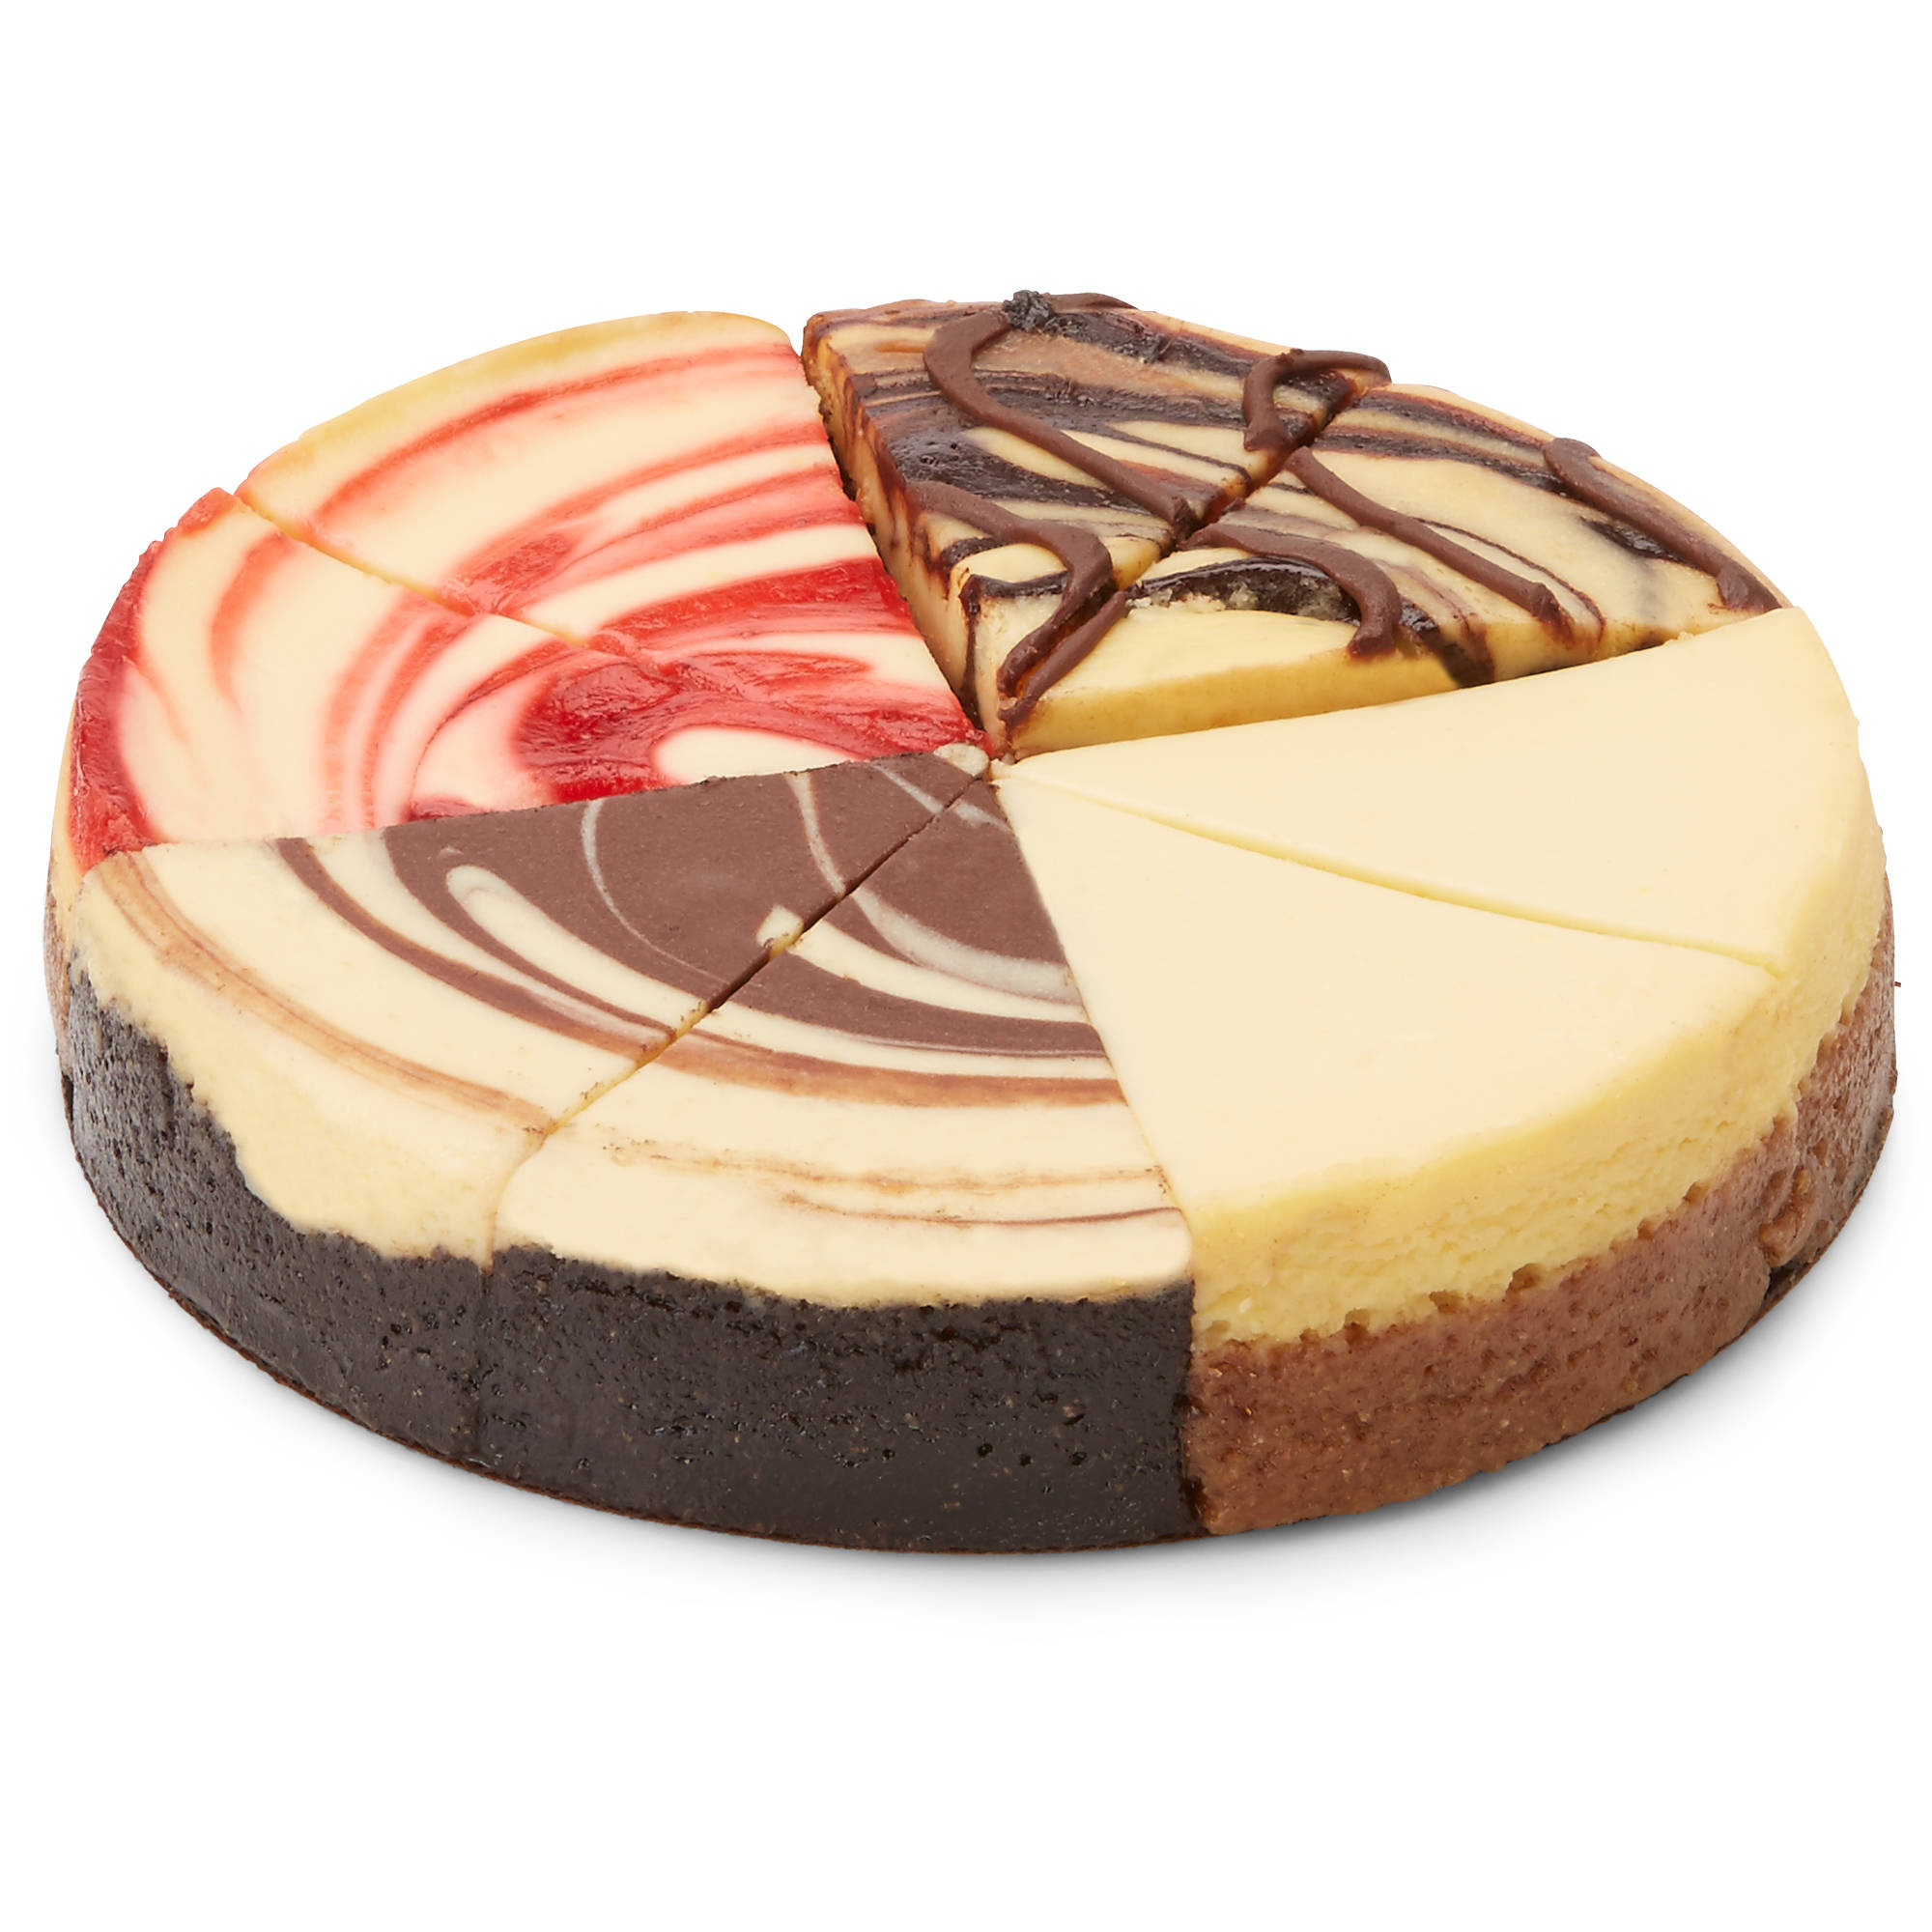 The Cheesecake Factory ® Cheesecake & Cakes. Transform any occasion into a memorable event with rich cakes and creamy cheesecakes from The Cheesecake Factory ® available exclusively online from Harry & David.